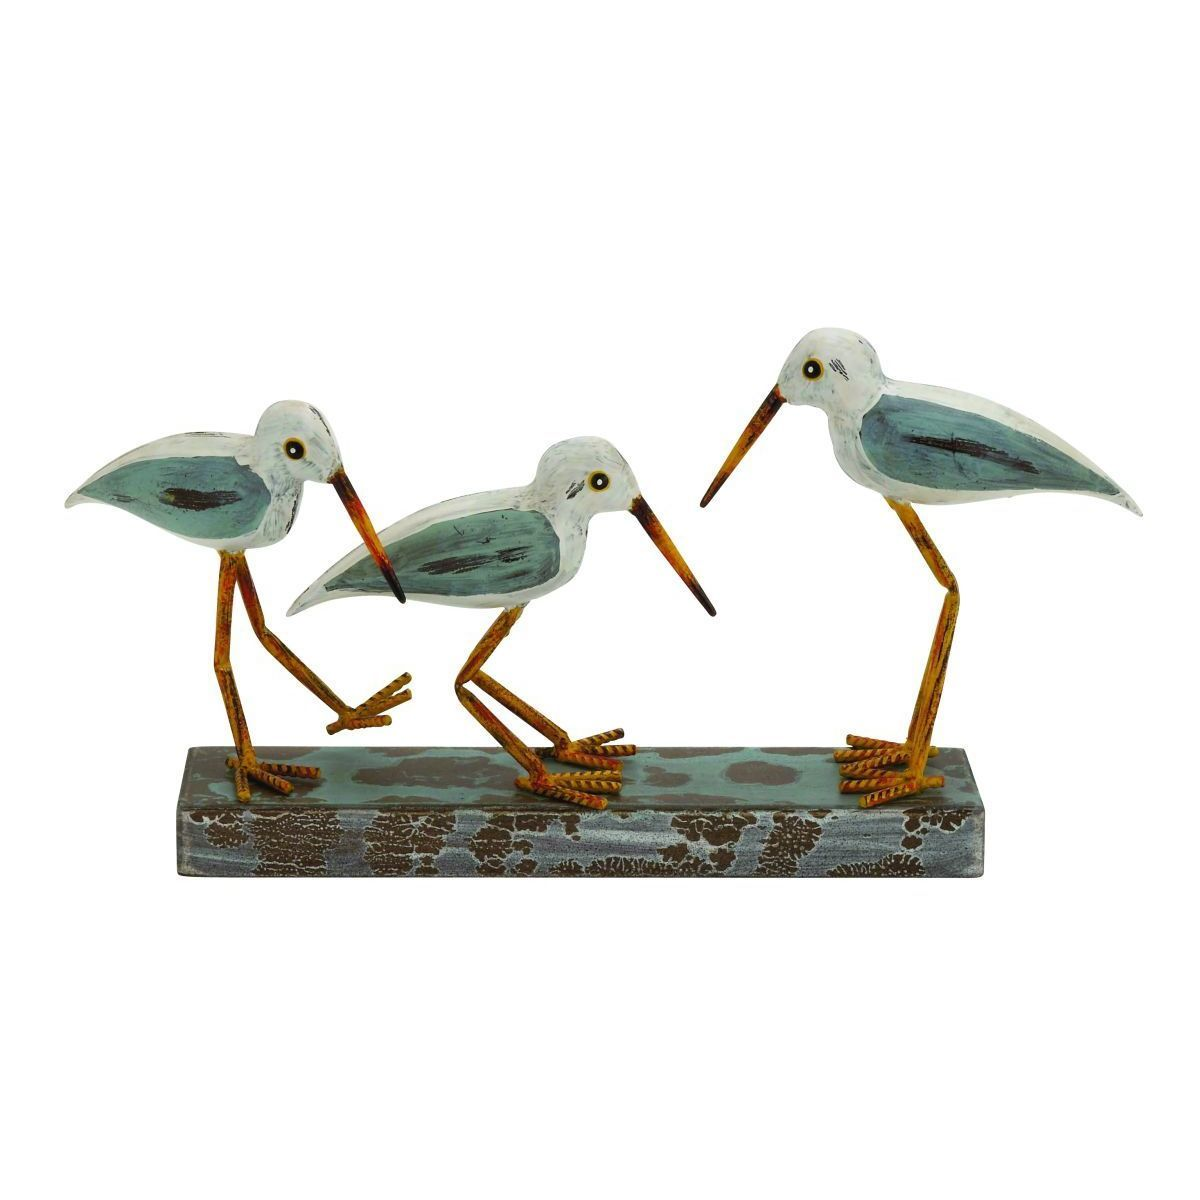 Overstock Com Online Shopping Bedding Furniture Electronics Jewelry Clothing More Wood And Metal Bird Sculpture Wooden Bird